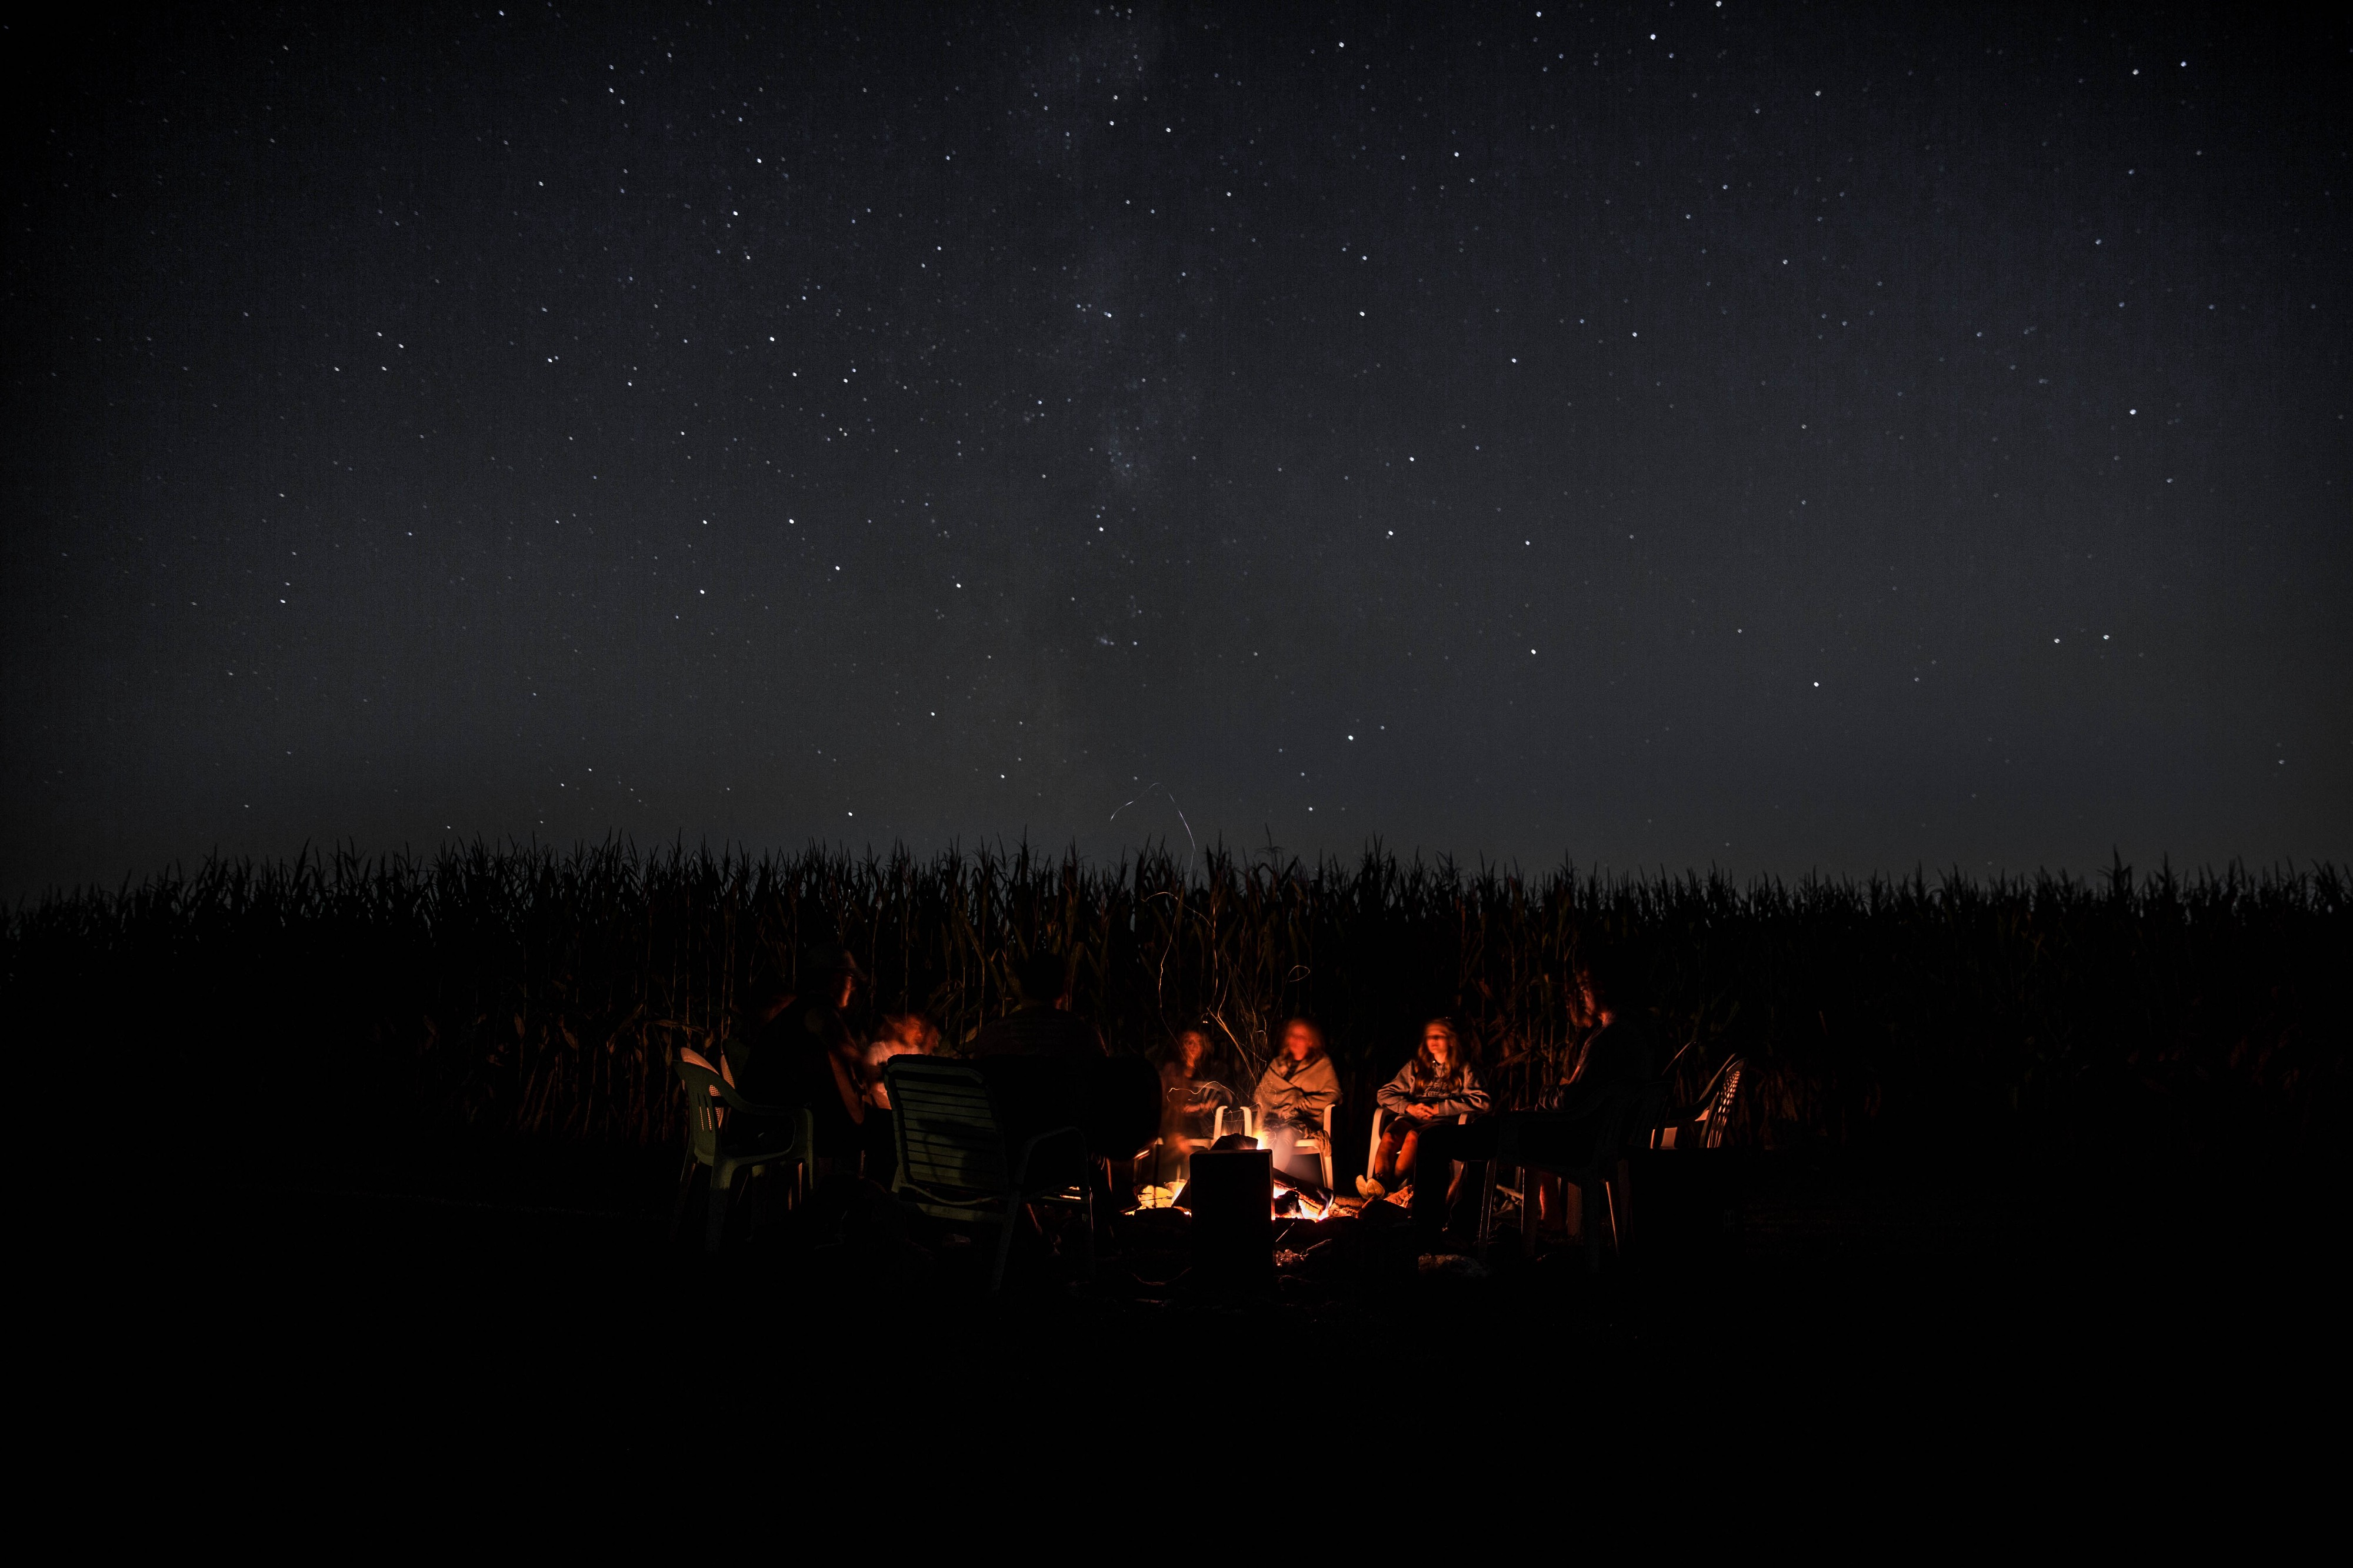 A group of people sitting around a campfire underneath the stars.